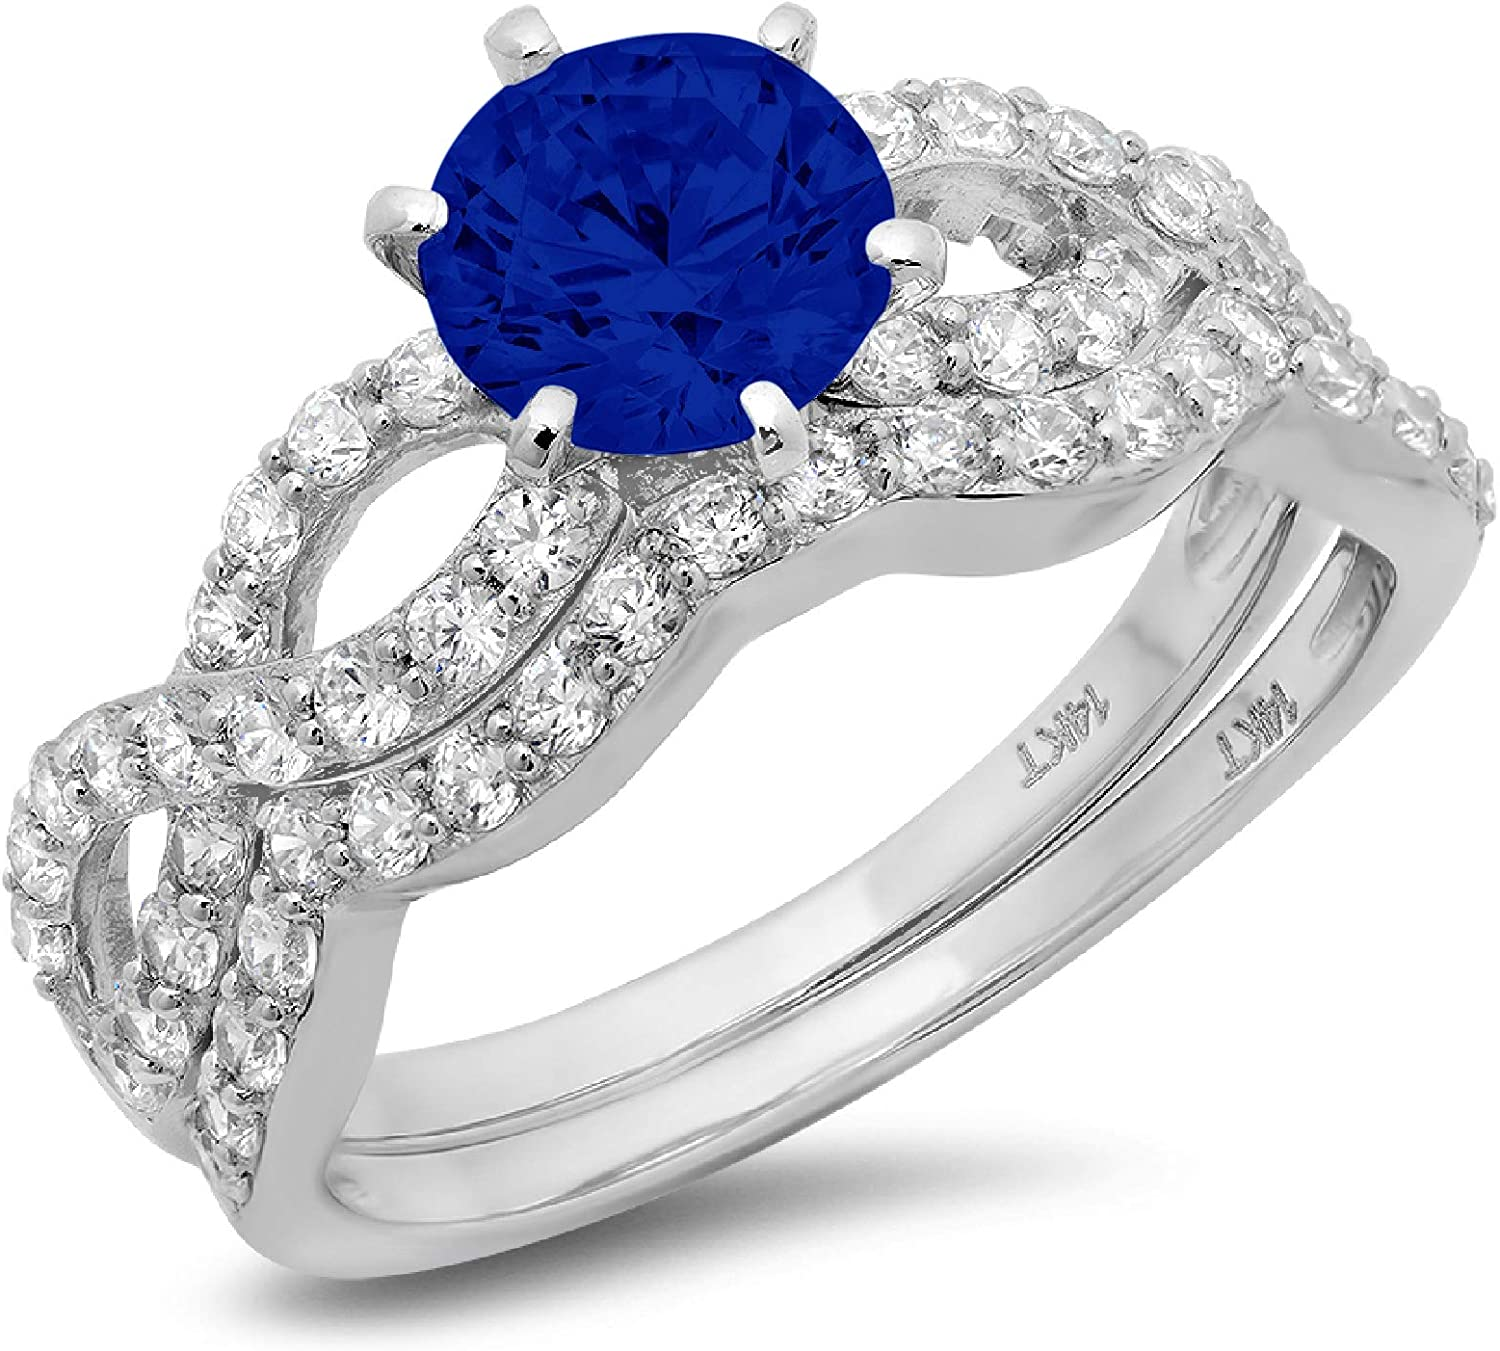 1.49ct Round Cut Halo Pave Solitaire Split Shank Accent Ideal Flawless Simulated CZ Blue Sapphire Engagement Promise Designer Anniversary Wedding Bridal ring band set Curved 14k White Gold